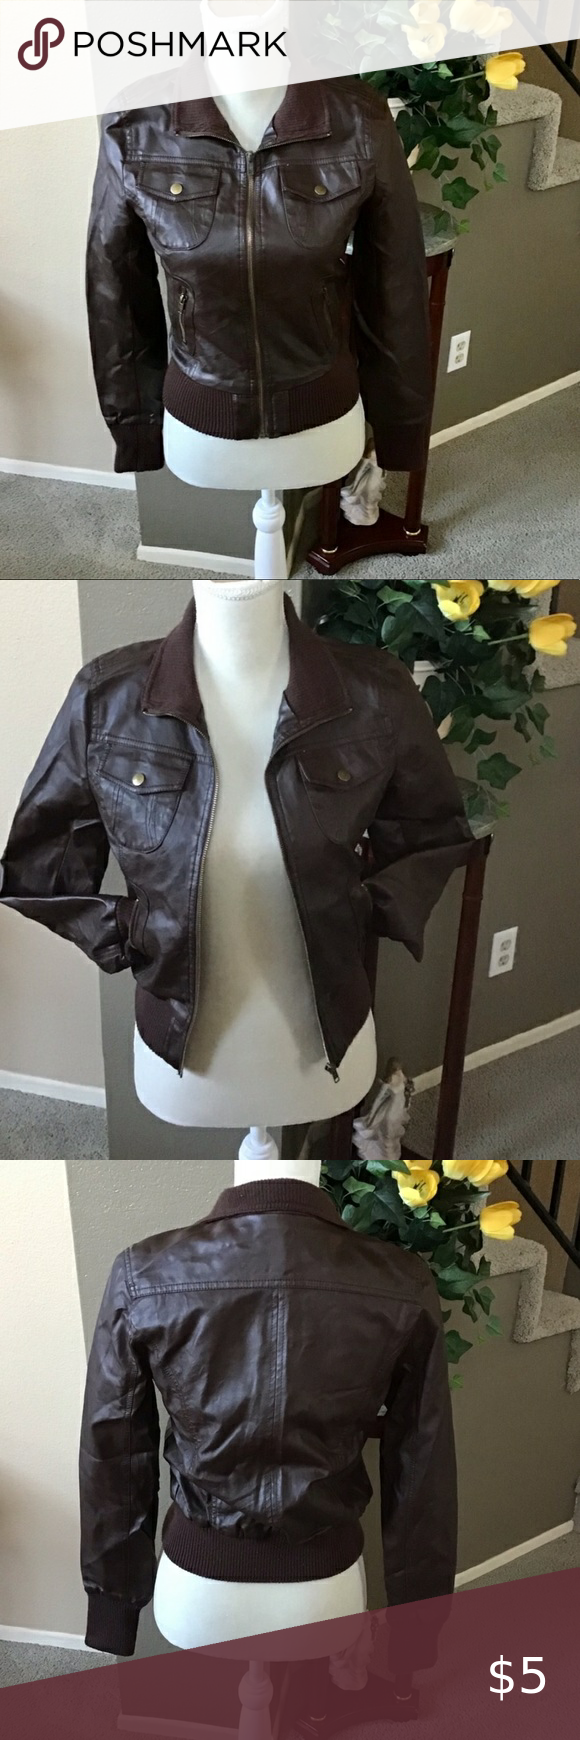 Ambiance Apparel Jacket Ambiance Apparel Jacket Preowned Good Condition Ambiance Jackets Coats Ambiance Apparel Clothes Design Apparel [ 1740 x 580 Pixel ]